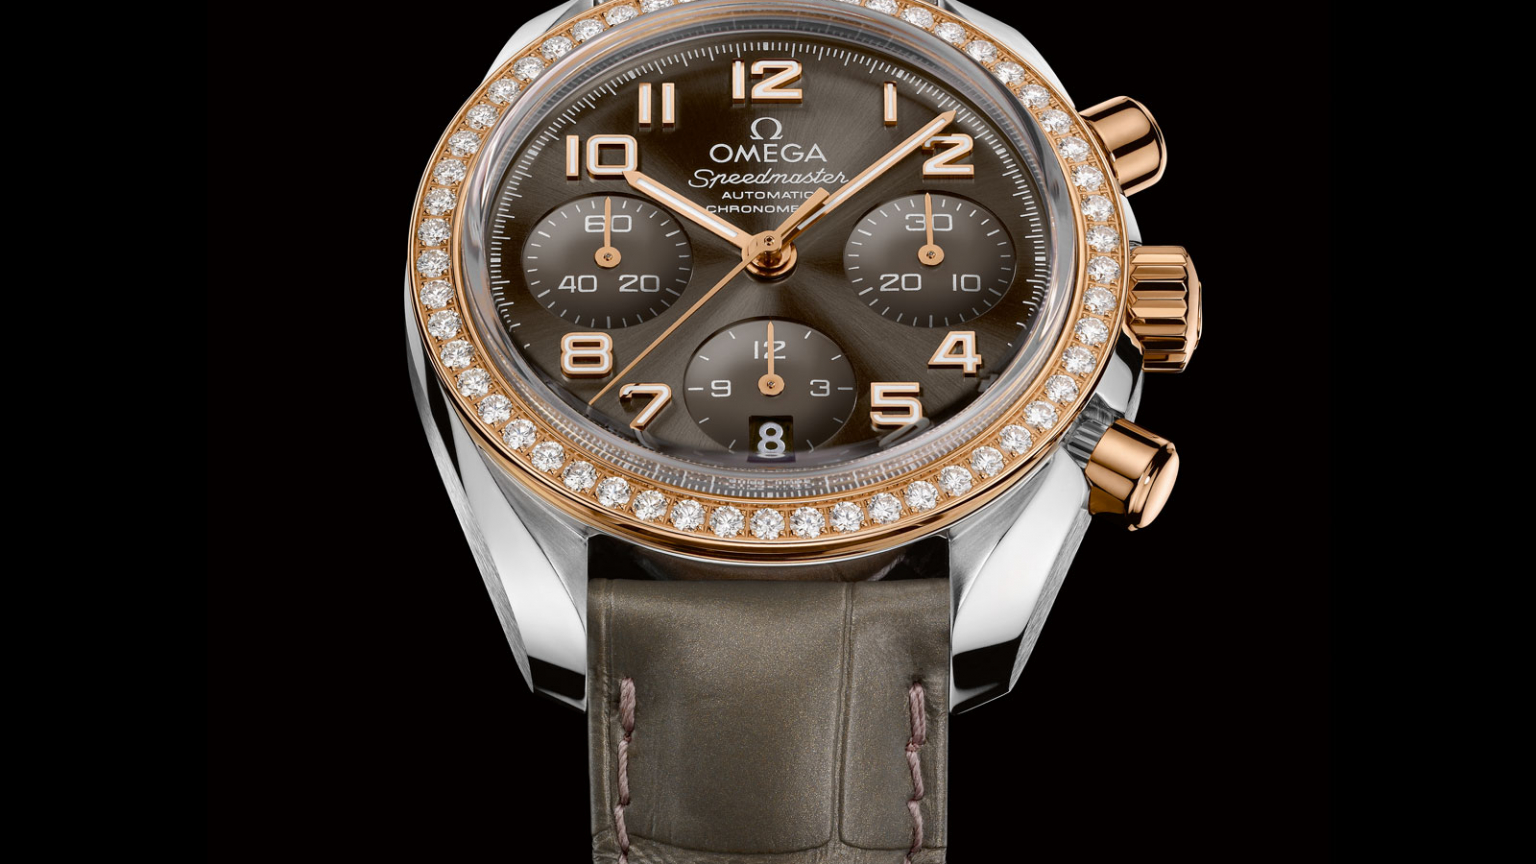 Free Download Million Of Wallpaperscom Omega Swiss Luxury Watches Wallpapers 1600x1200 For Your Desktop Mobile Tablet Explore 47 Omega Watches Wallpaper Omega Watches Wallpaper Omega Wallpapers Omega Cat Wallpaper